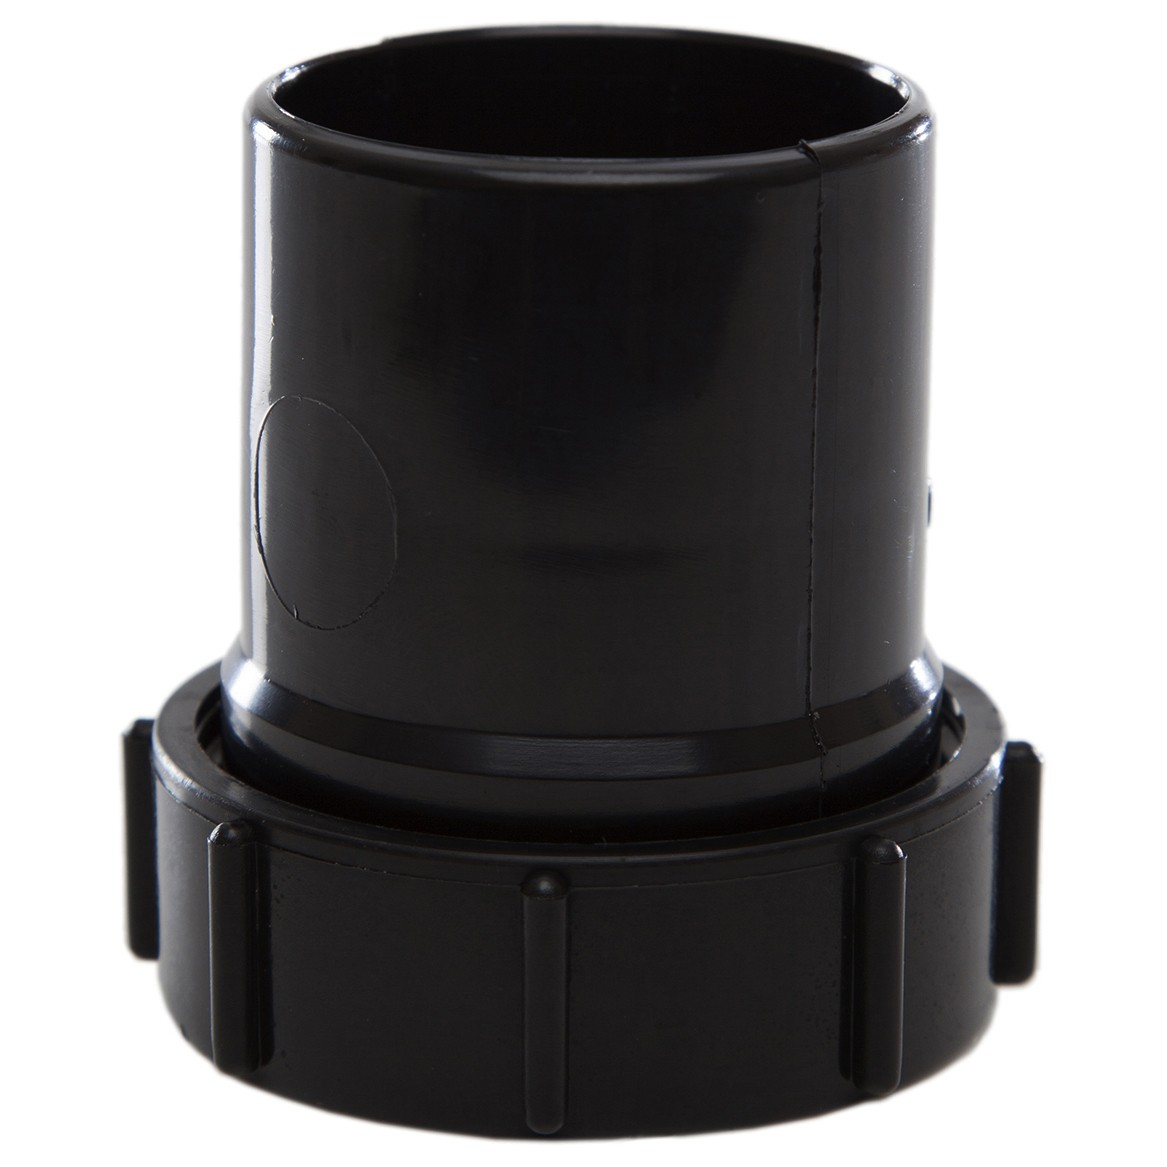 Polypipe 40mm Solvent Weld Waste Expansion Coupler - Black